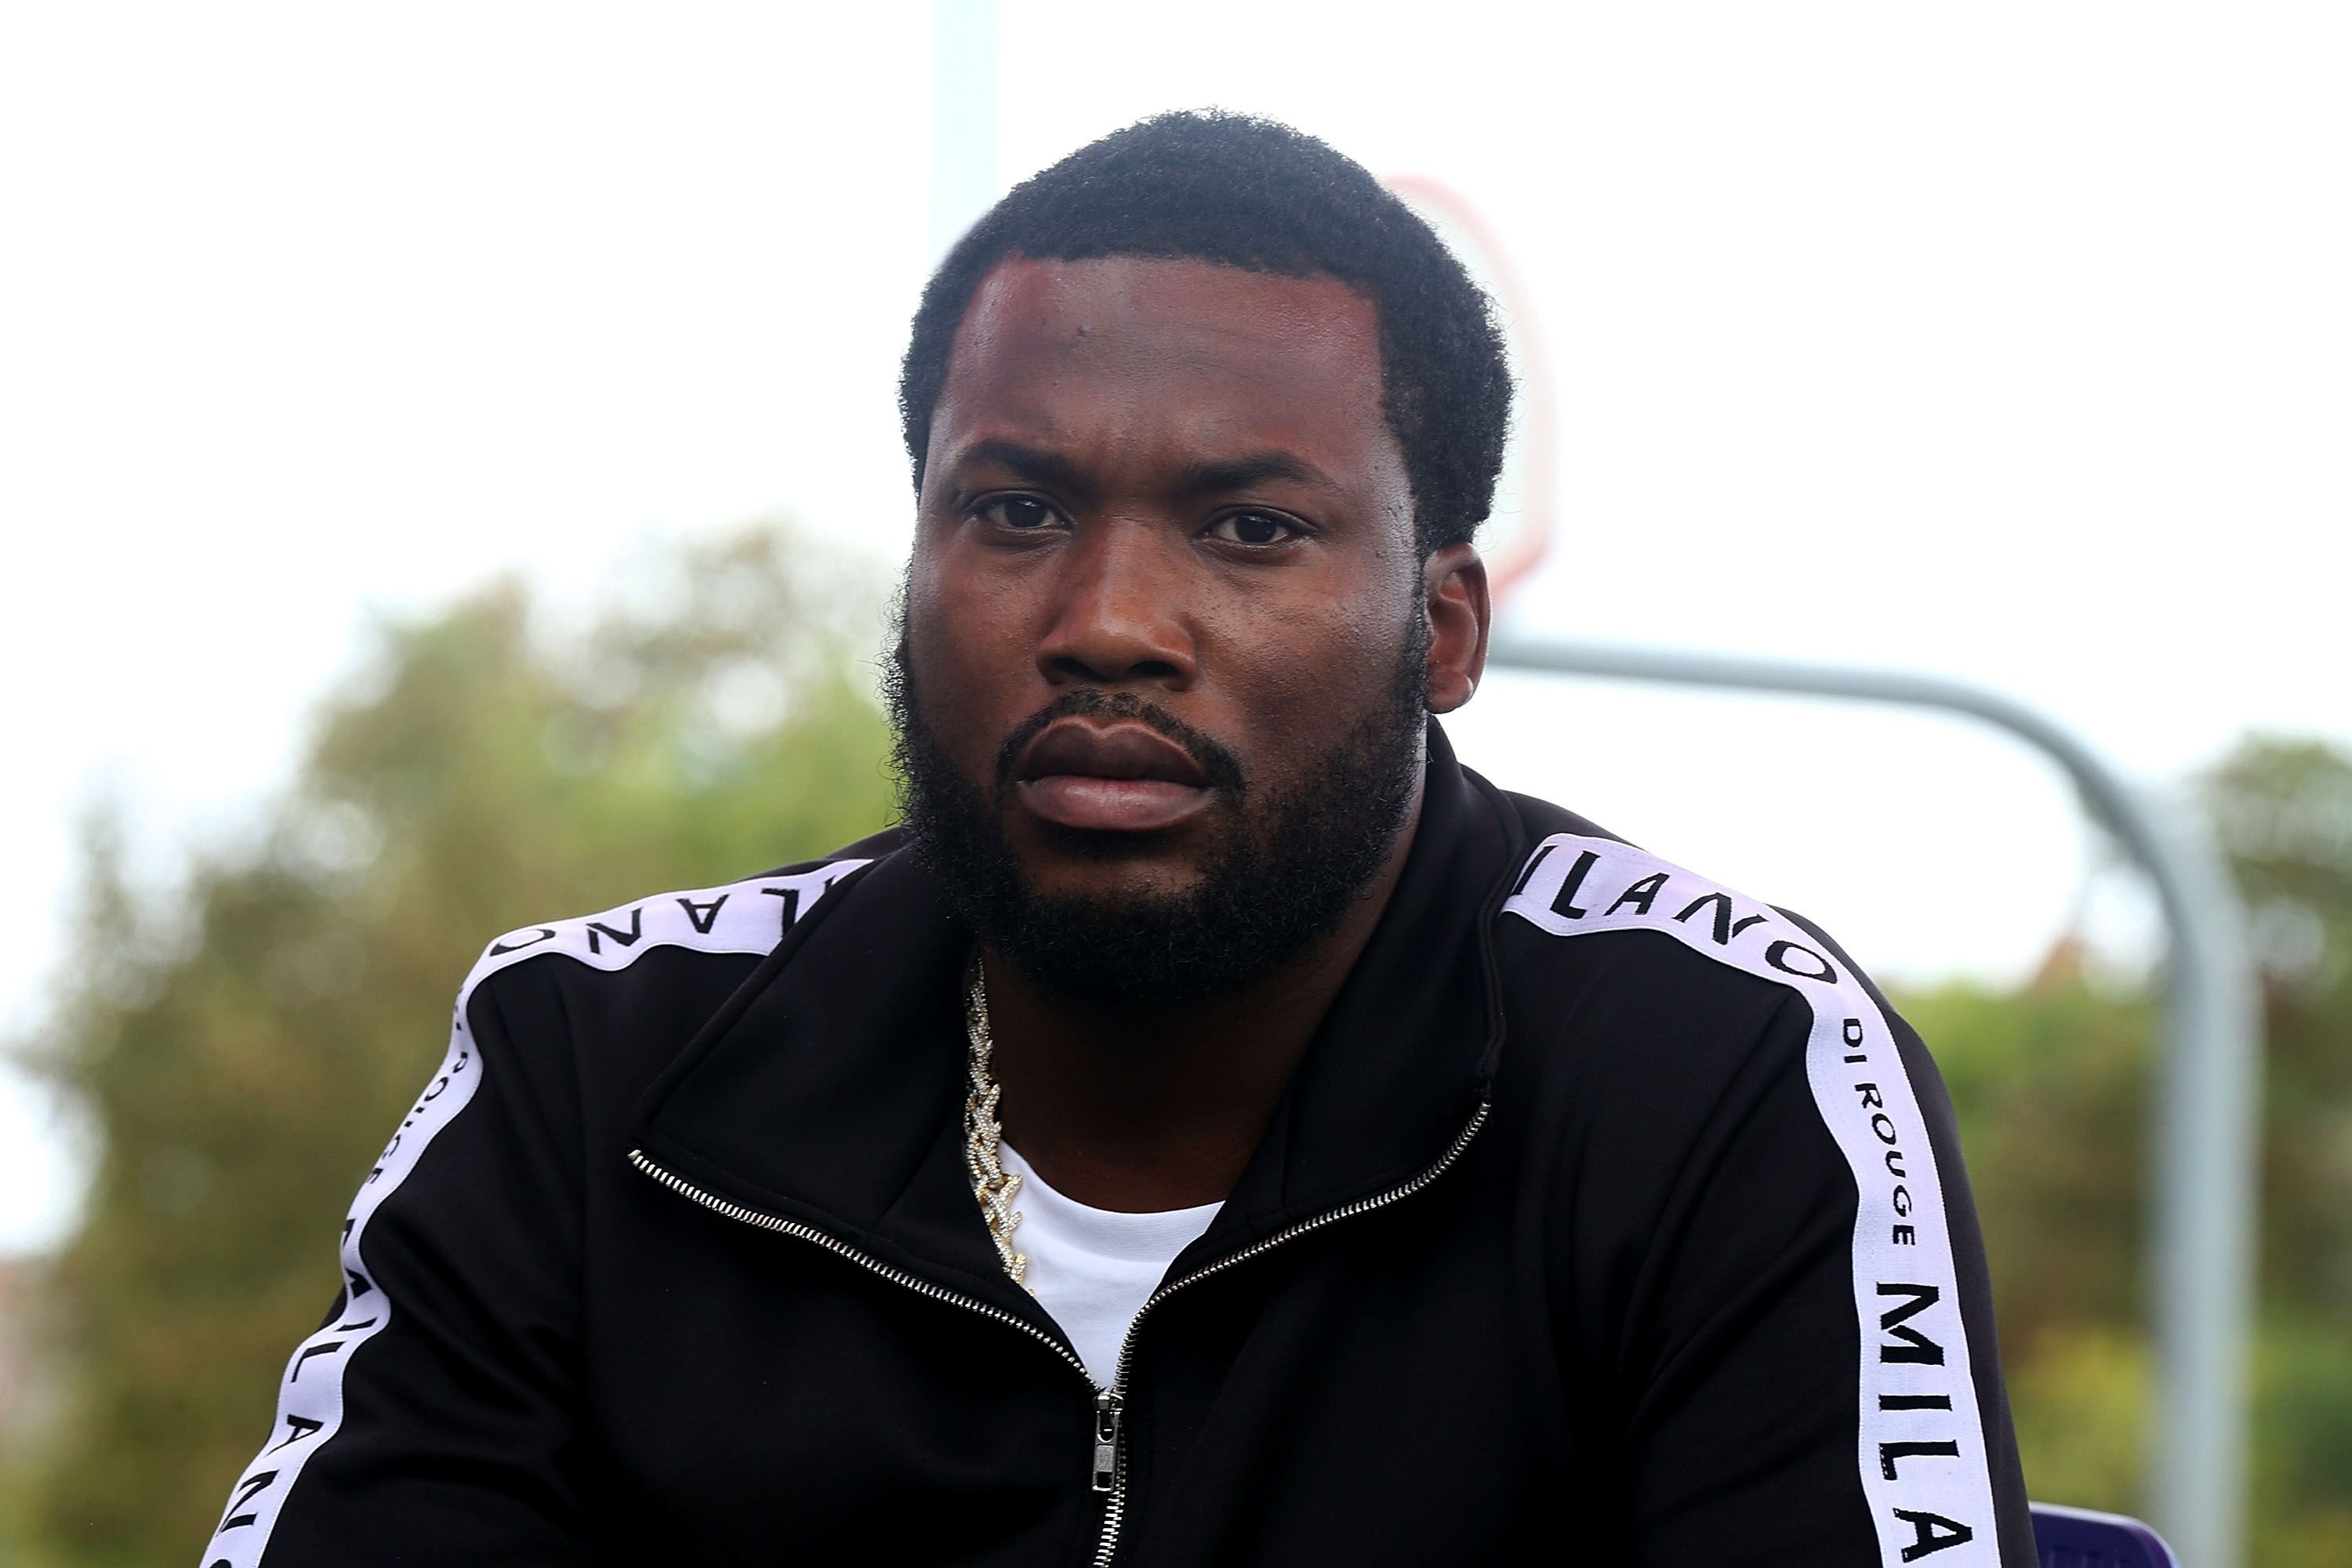 Meek Mill attends Meek x PUMA Hoops Court Refurbishment Announcement on October 11, 2018 in Philadelphia, Pennsylvania   Photo: Getty Images